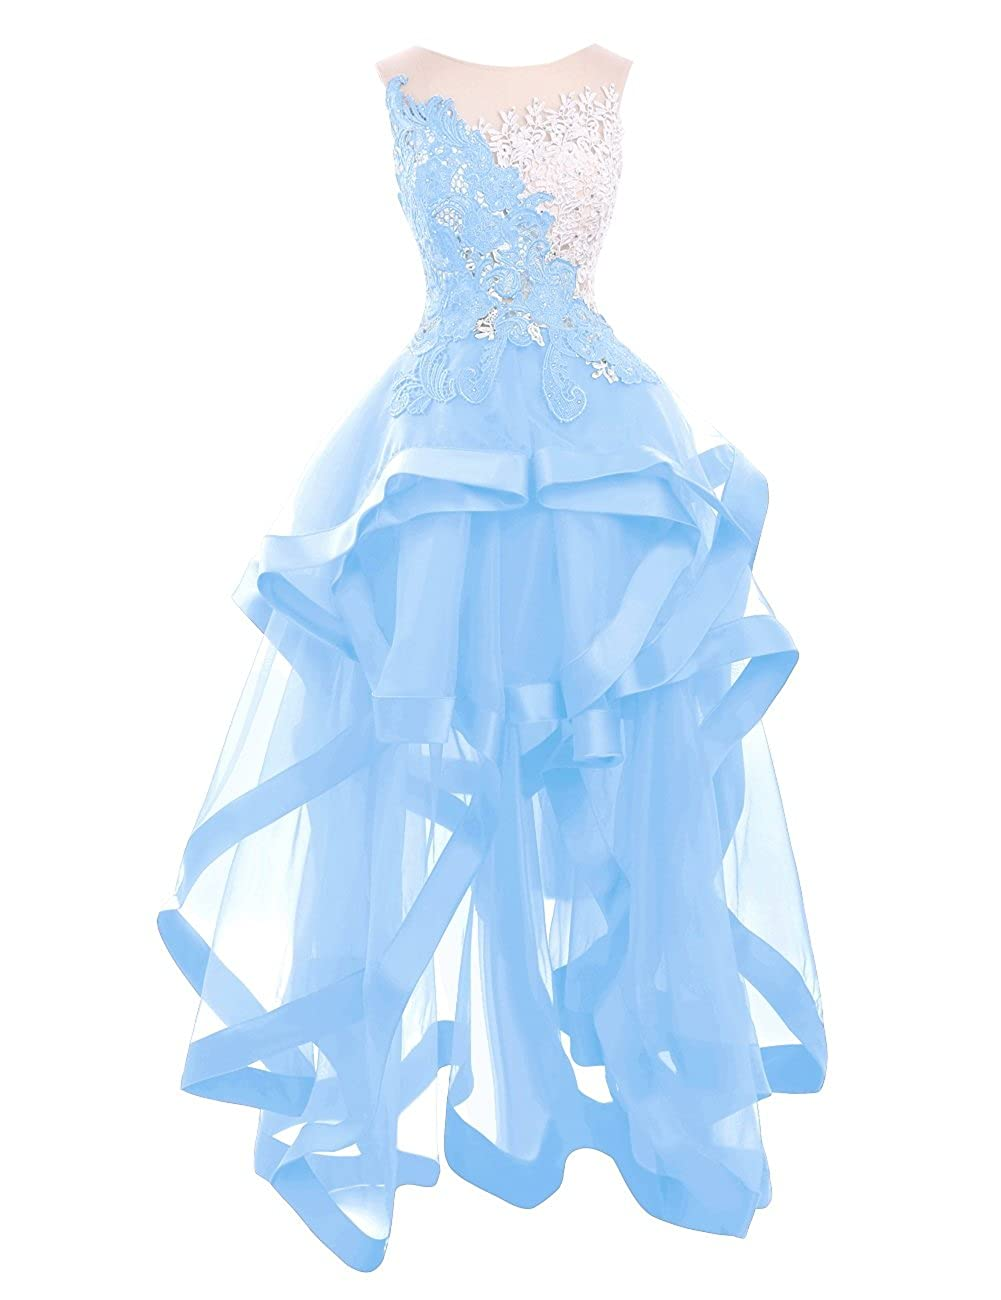 Sky bluee Riveroy Women Formal Lace High Low Evening Dress See Through Ruffles Ball Gown Prom Party Dress(17 colors)